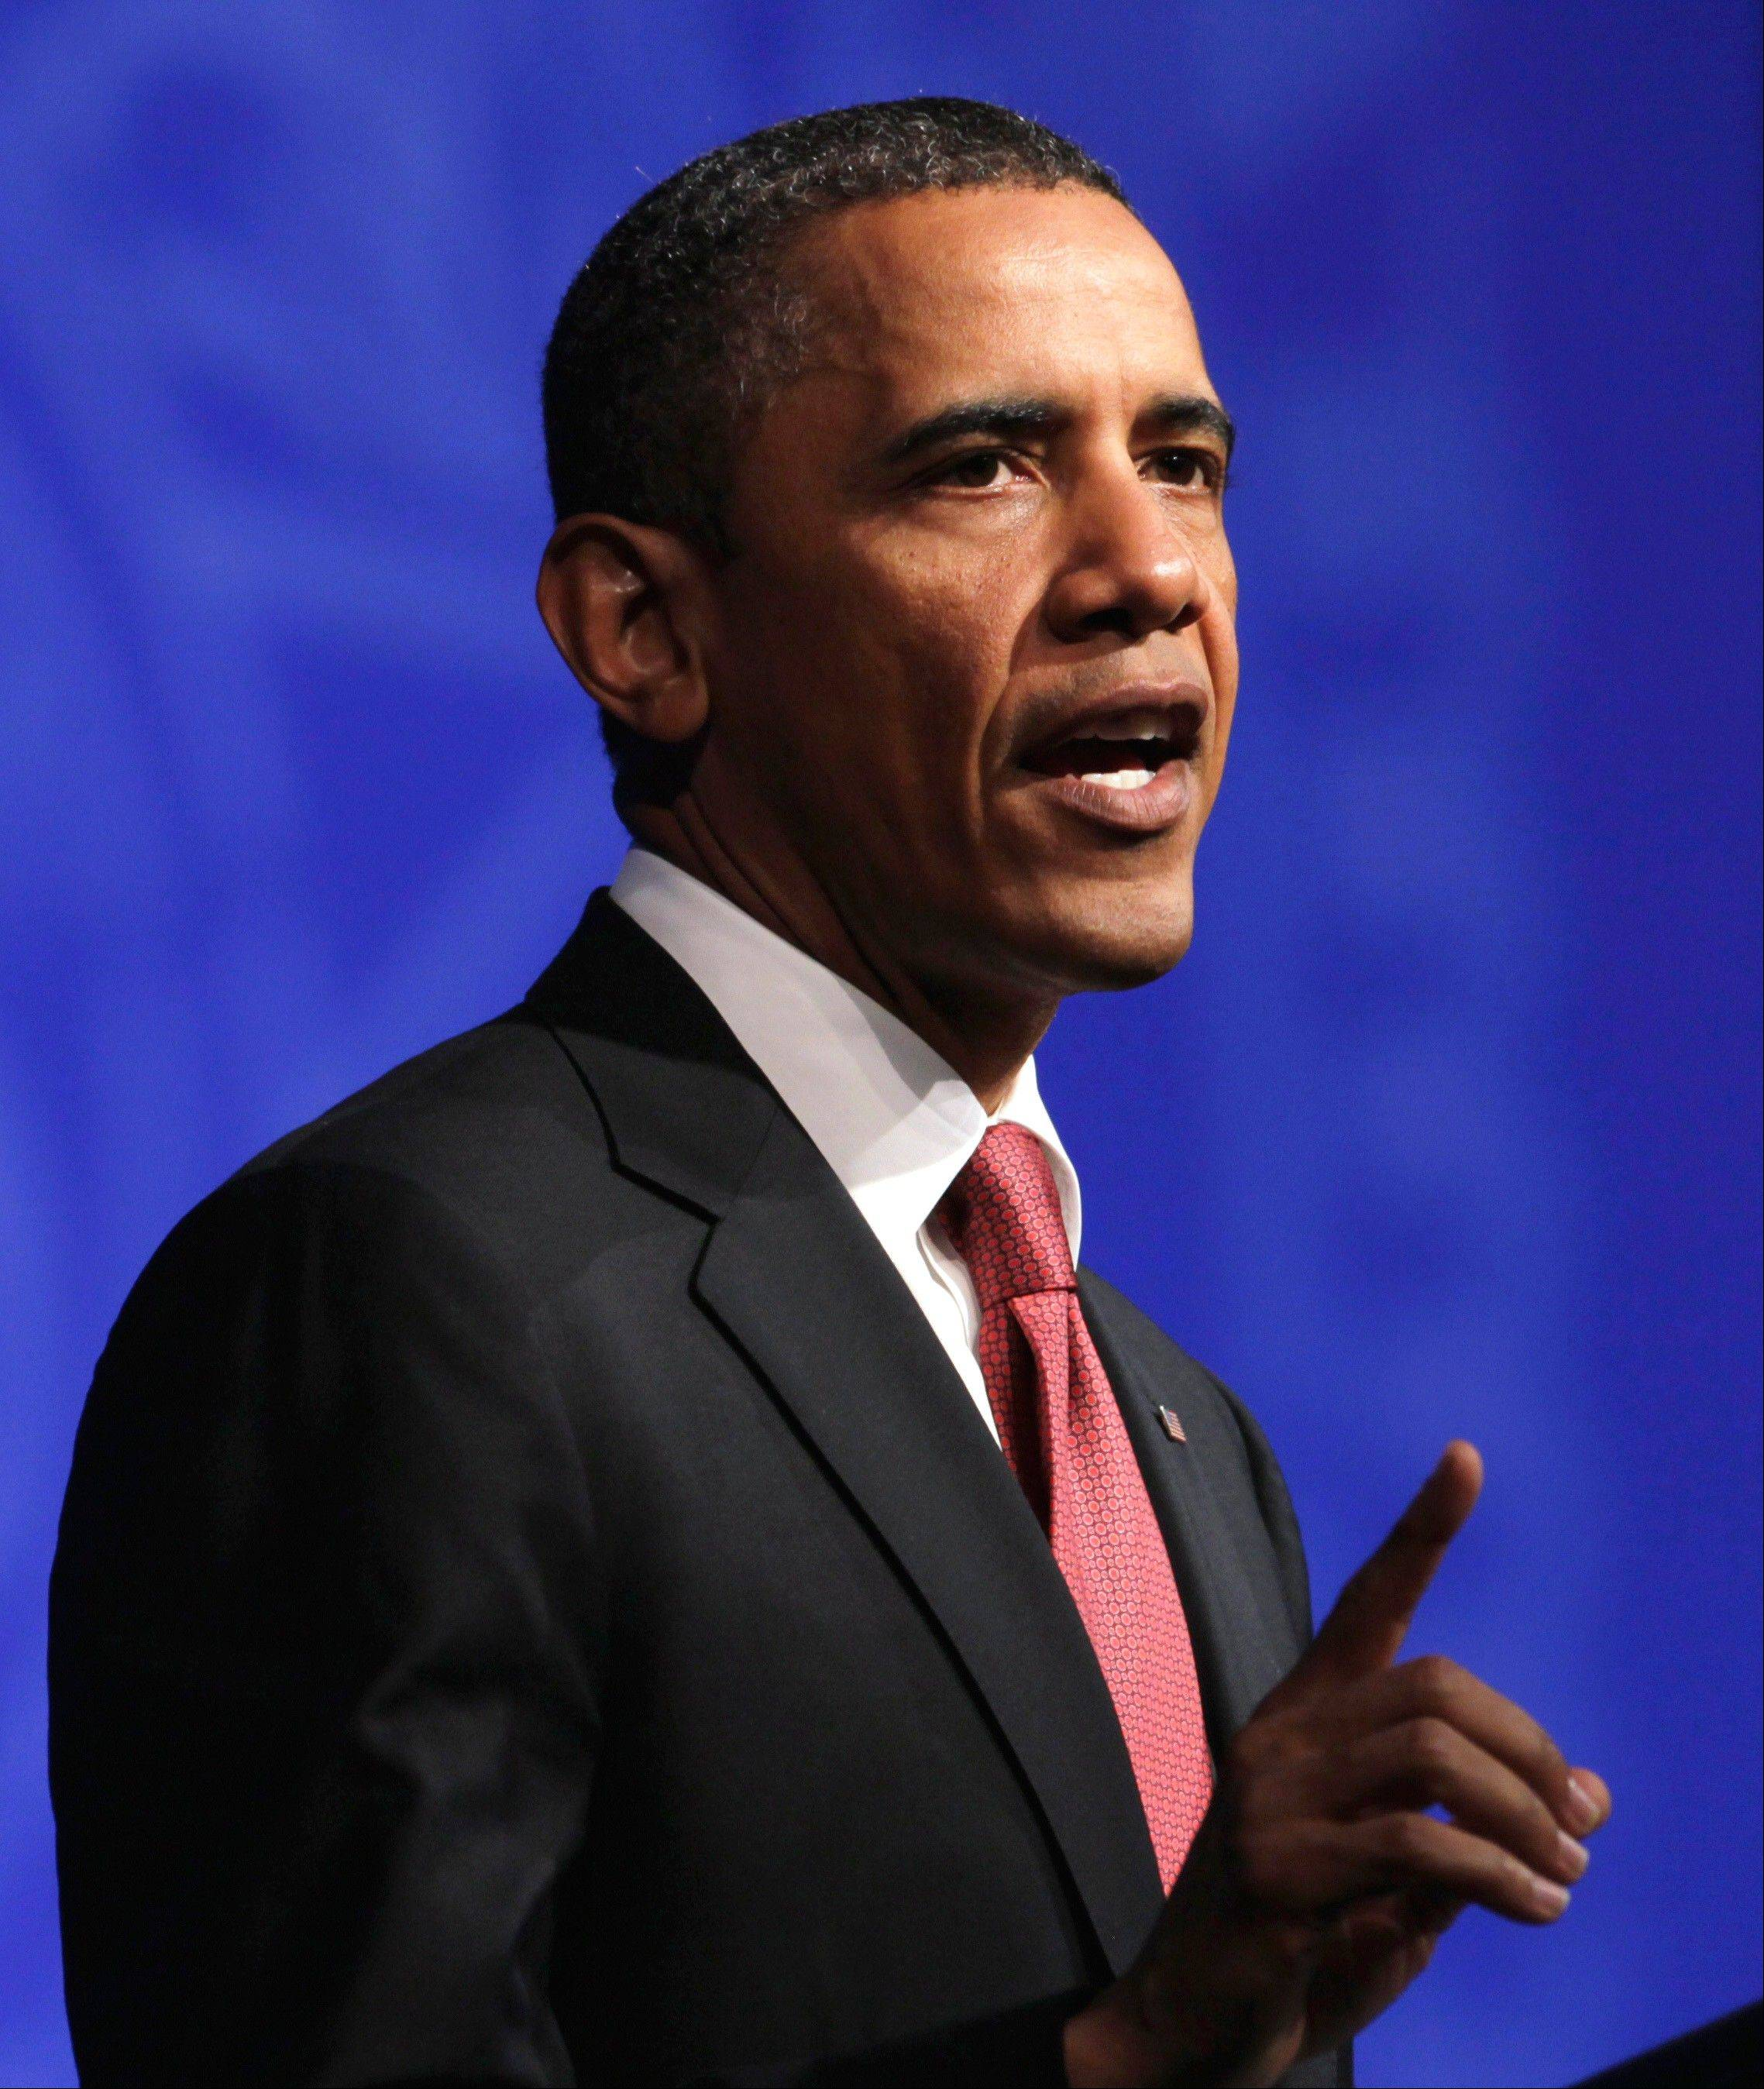 President Barack Obama is sacking a controversial proposed regulation tightening government smog standards, bowing to the demands of congressional Republicans and some business leaders.